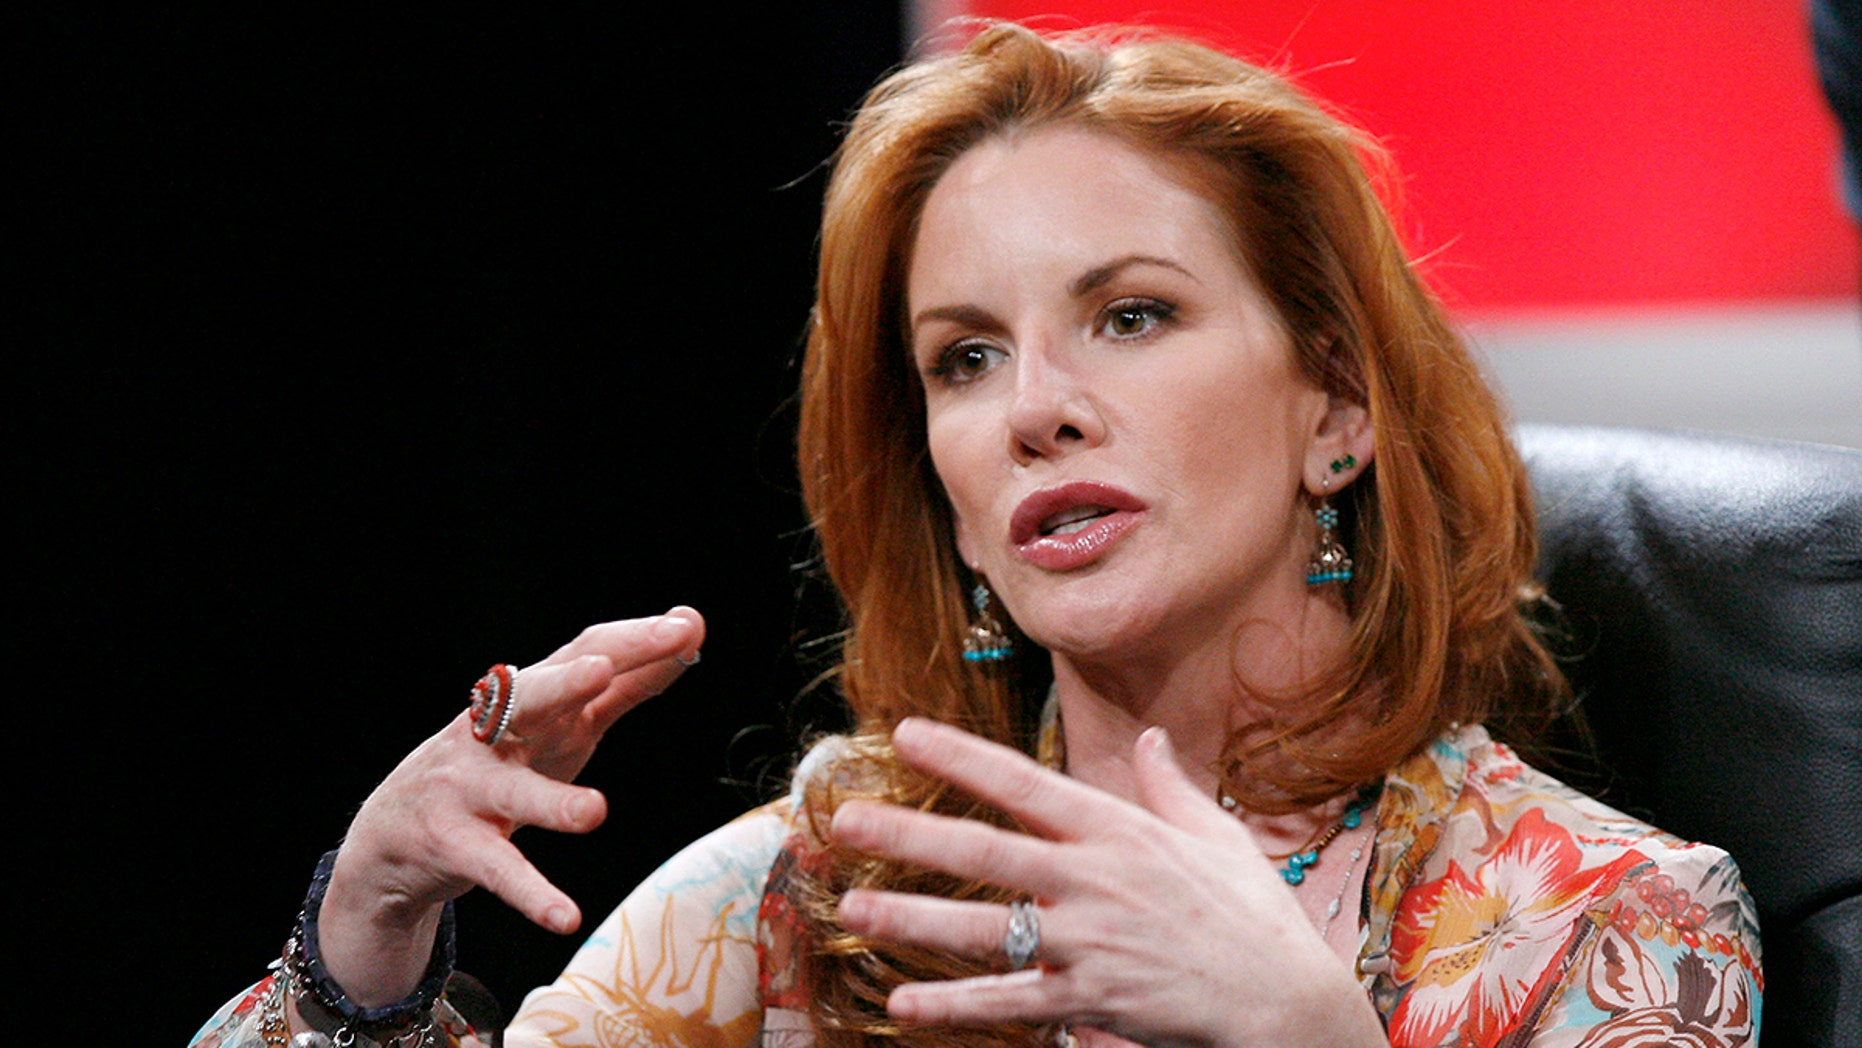 """Former """"Little House on the Prairie"""" actress Melissa Gilbert called out director Oliver Stone on Monday accusing him of humiliating her during an audition to settle a personal gripe."""